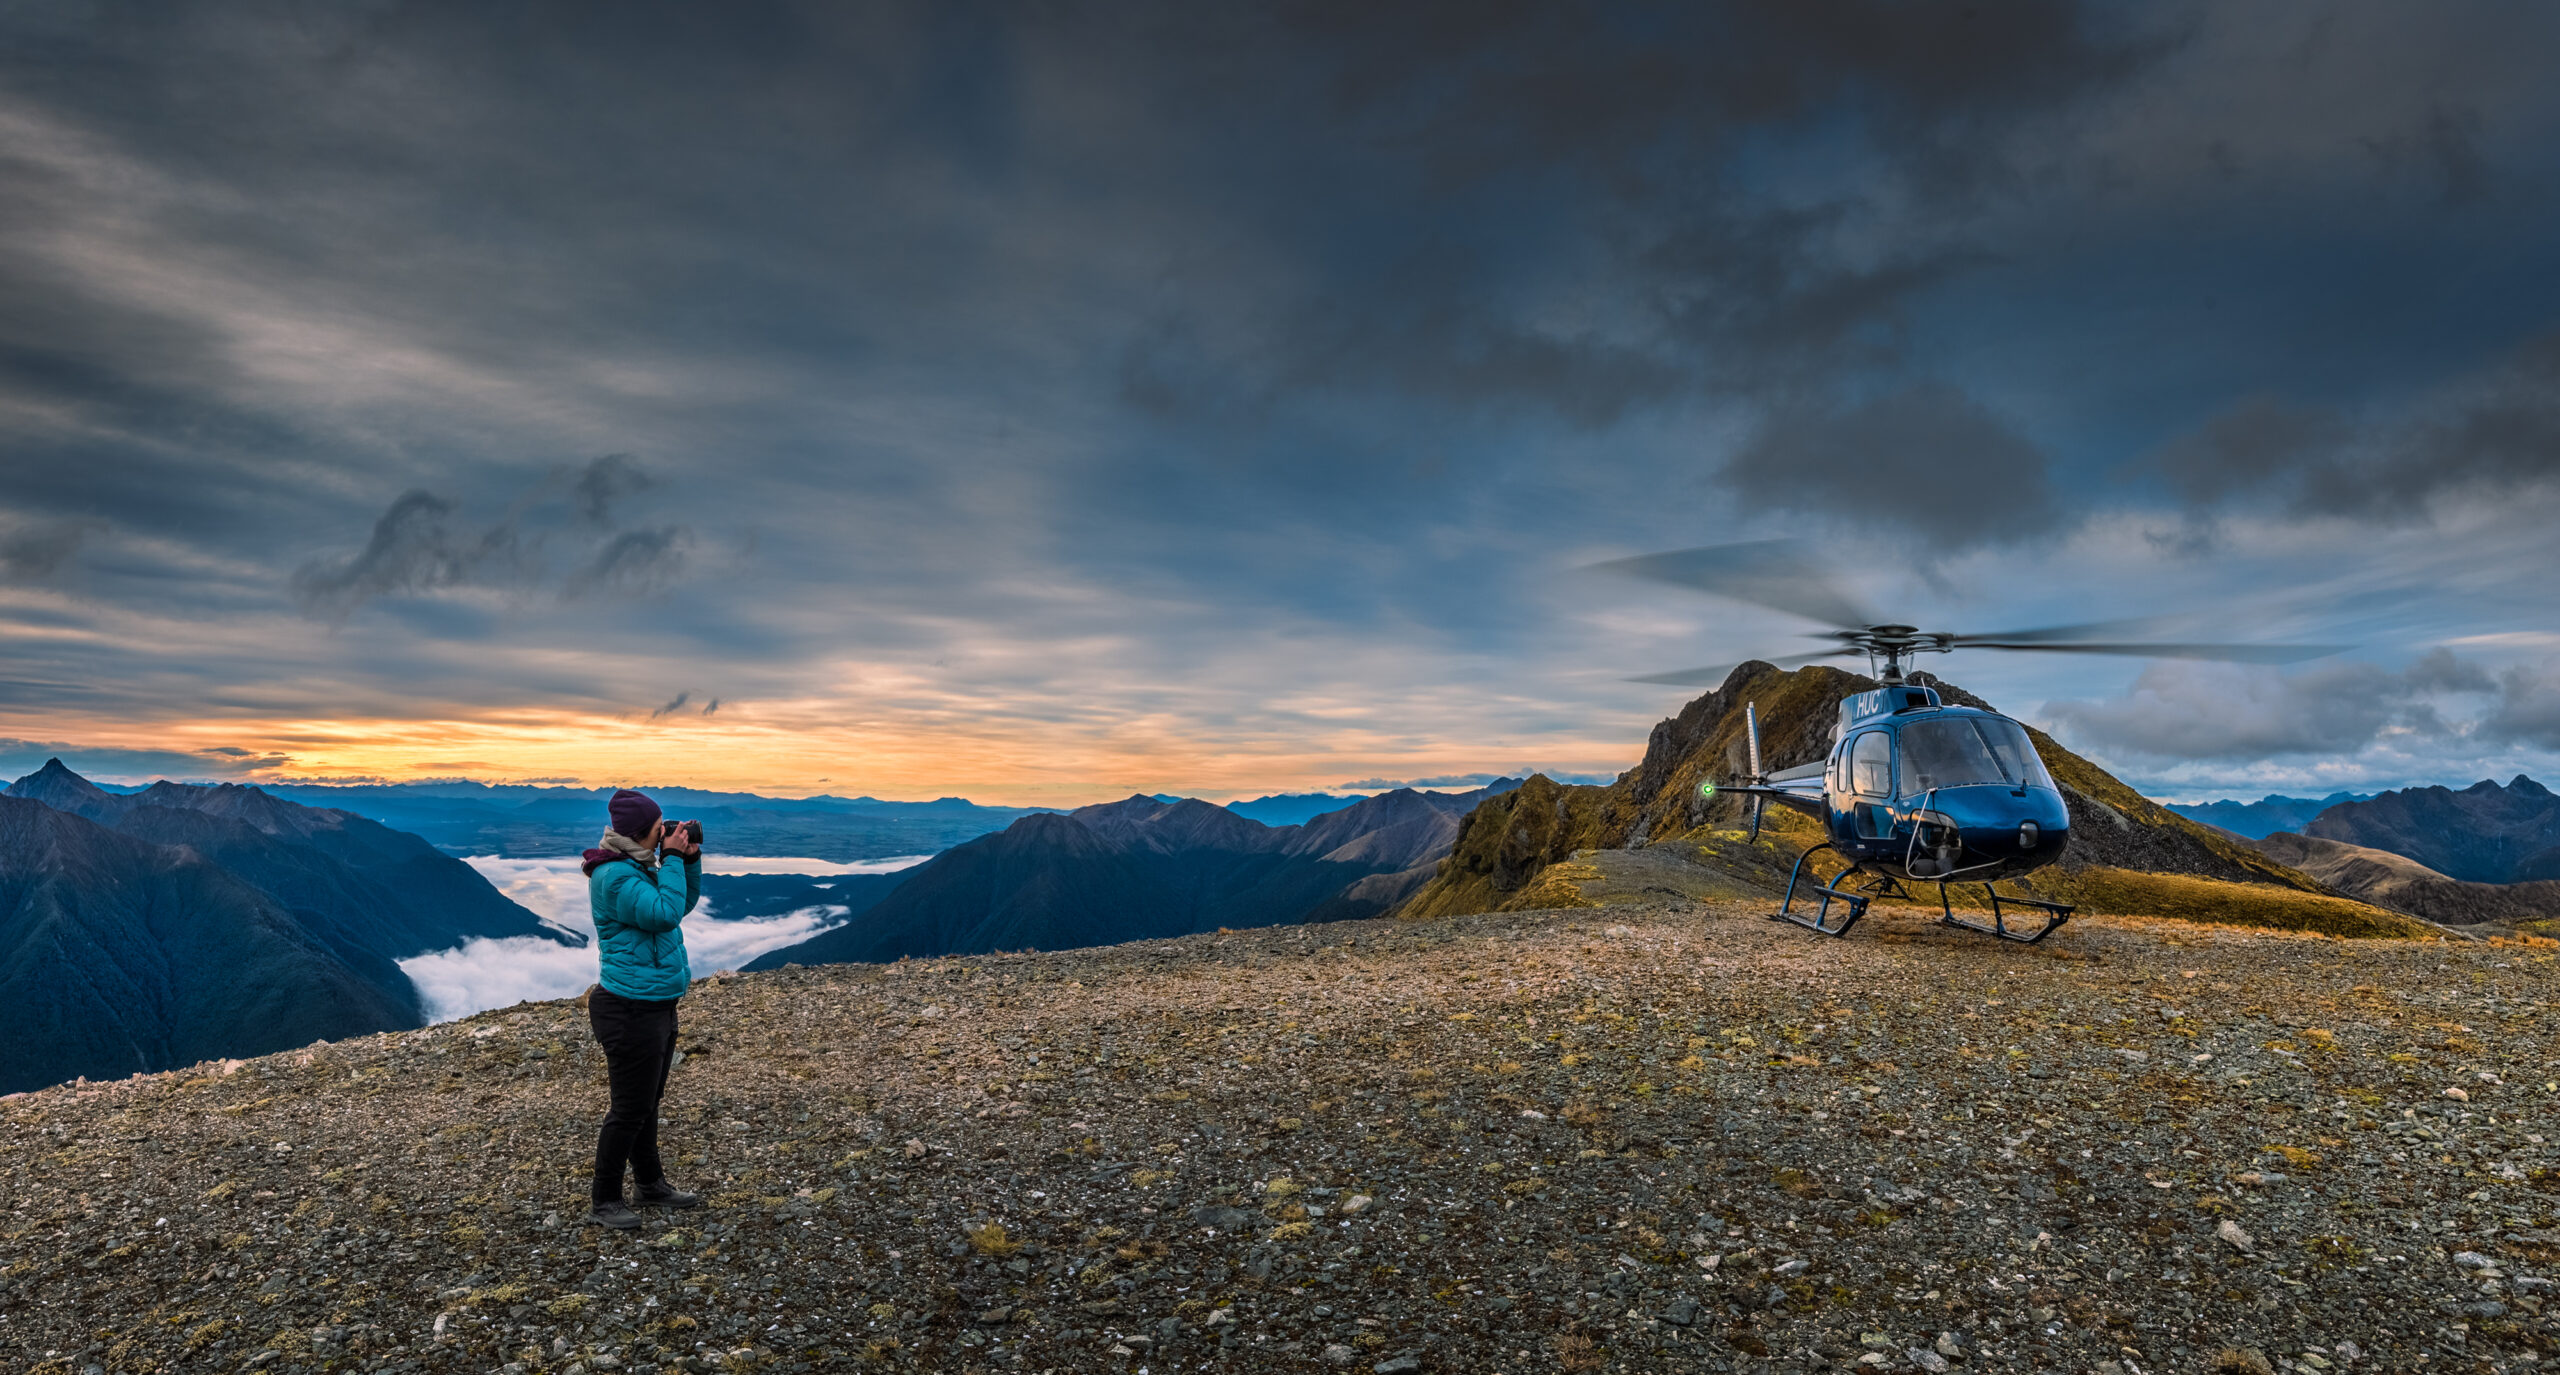 The Kepler Mountains Heli Experience